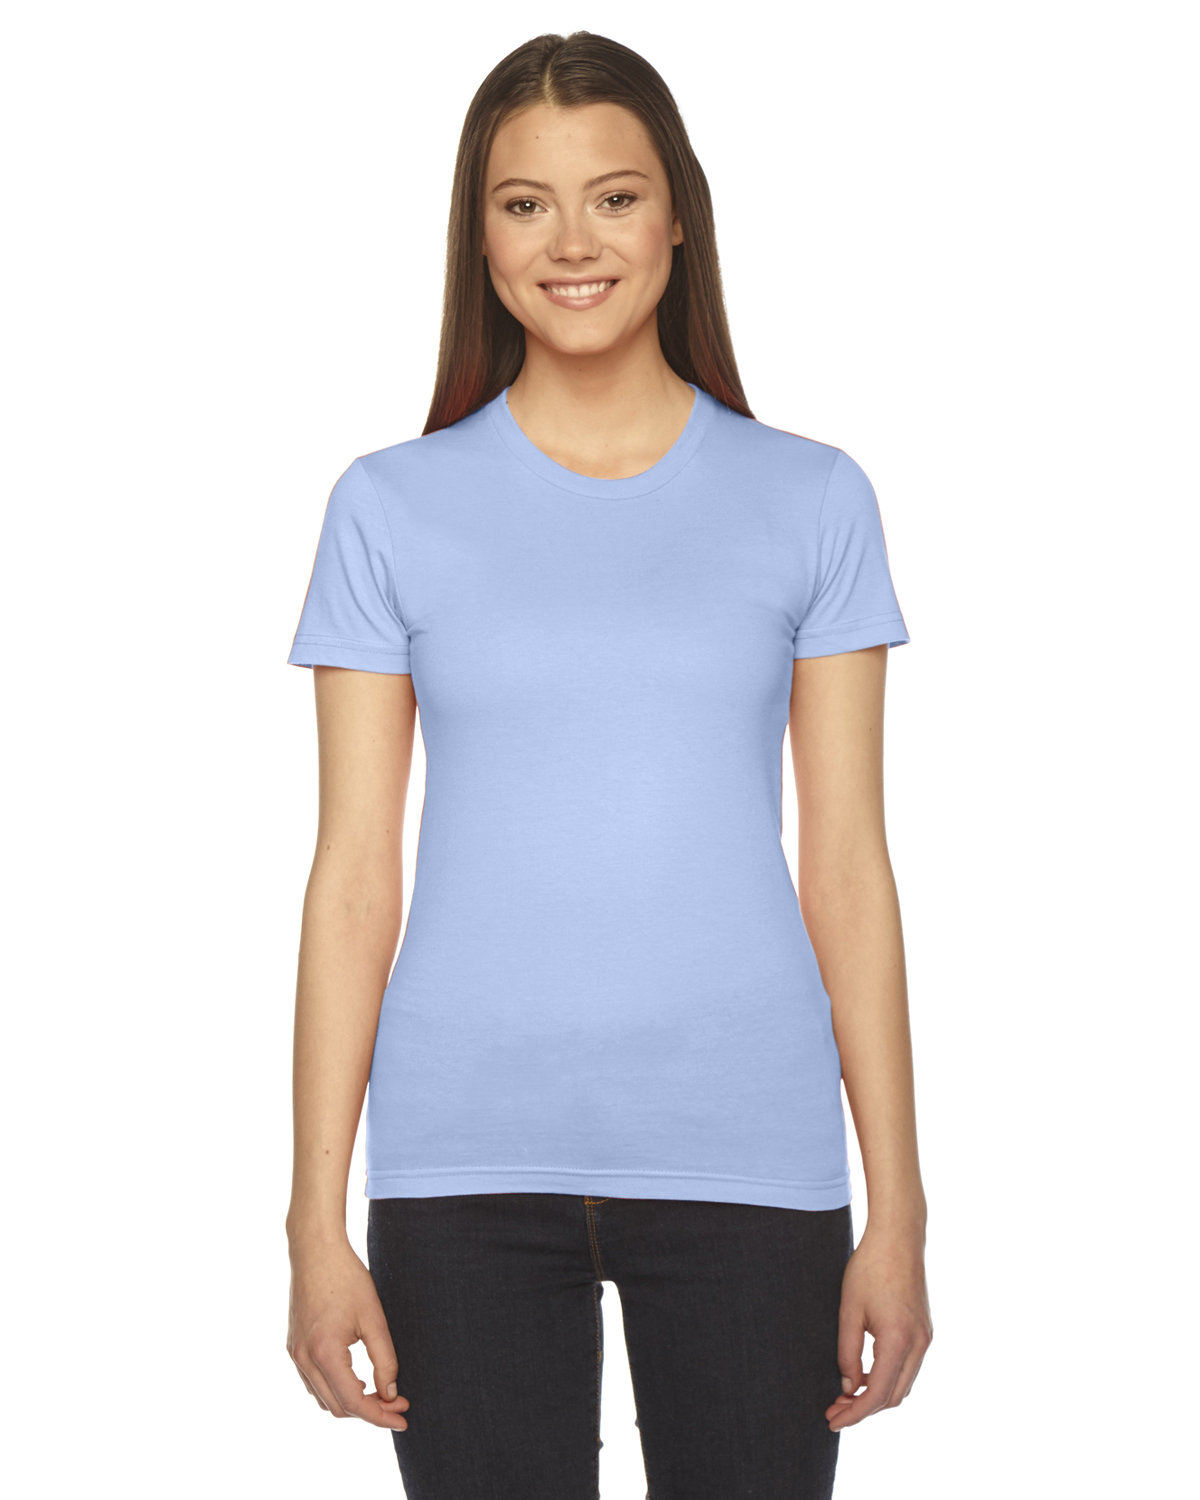 American Apparel Ladies' Fine Jersey Short-Sleeve T-Shirt BABY BLUE